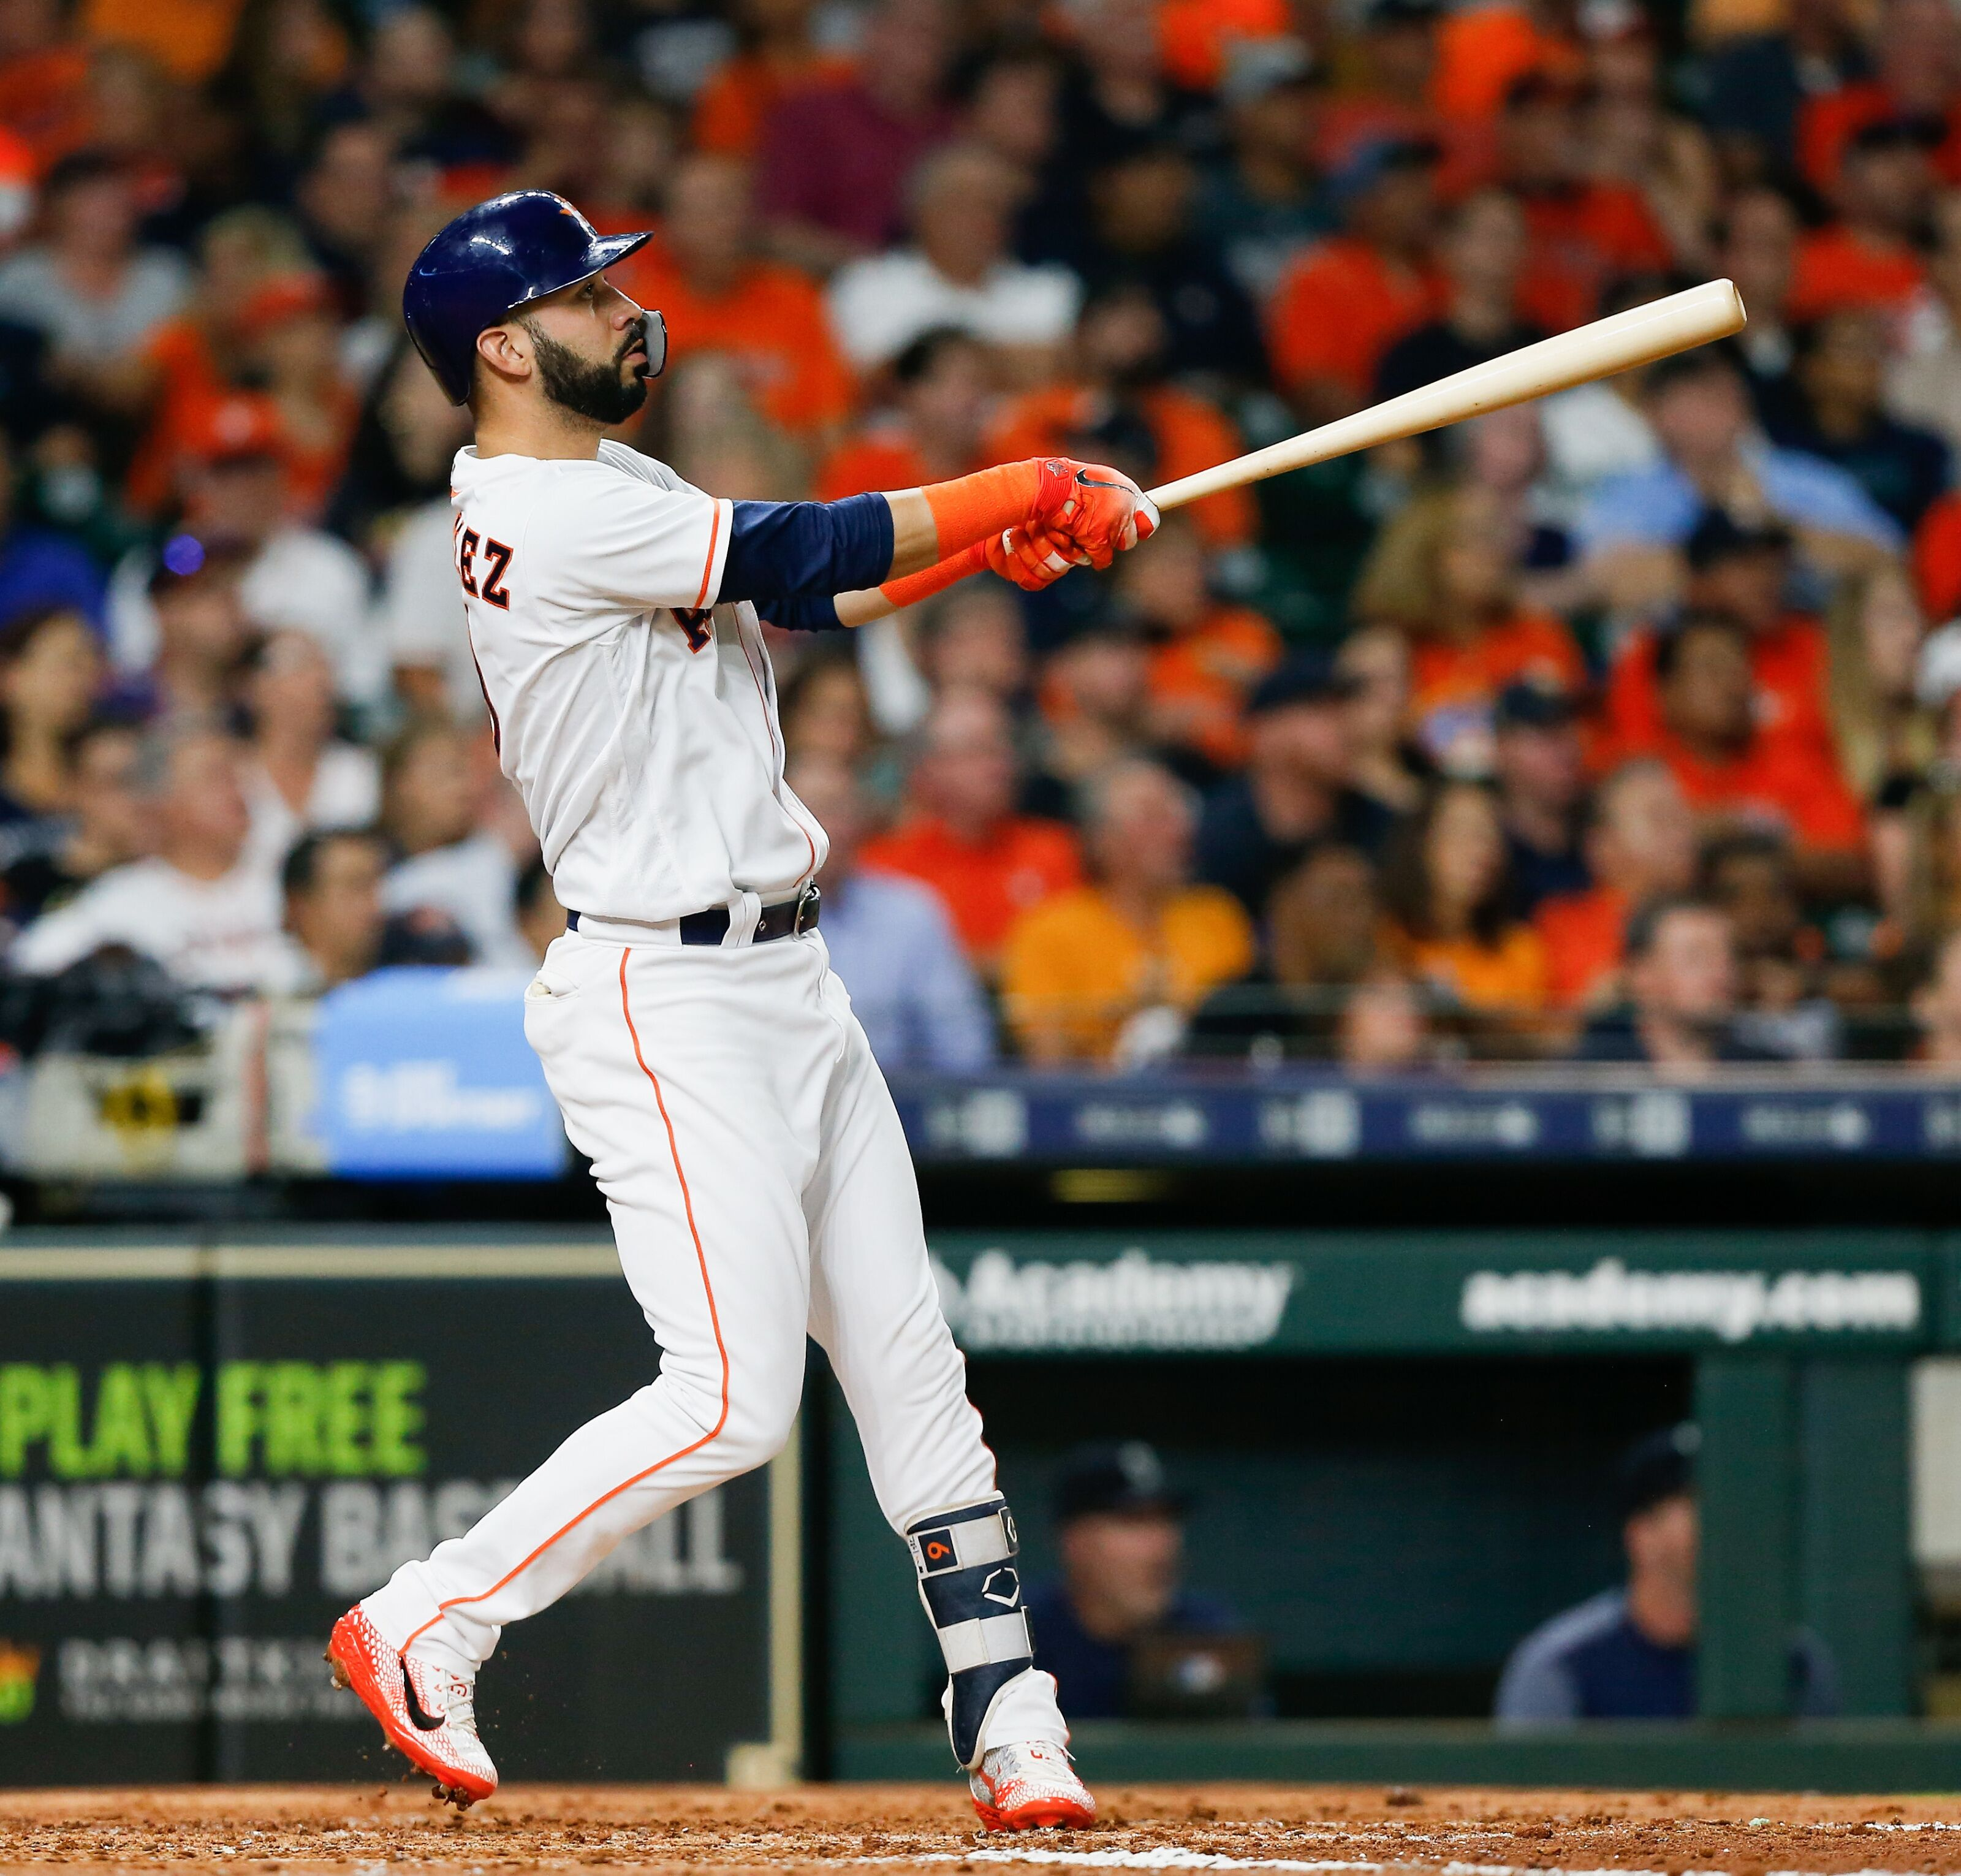 Dodgers: Marwin Gonzalez is the Safety Net the Dodgers Need